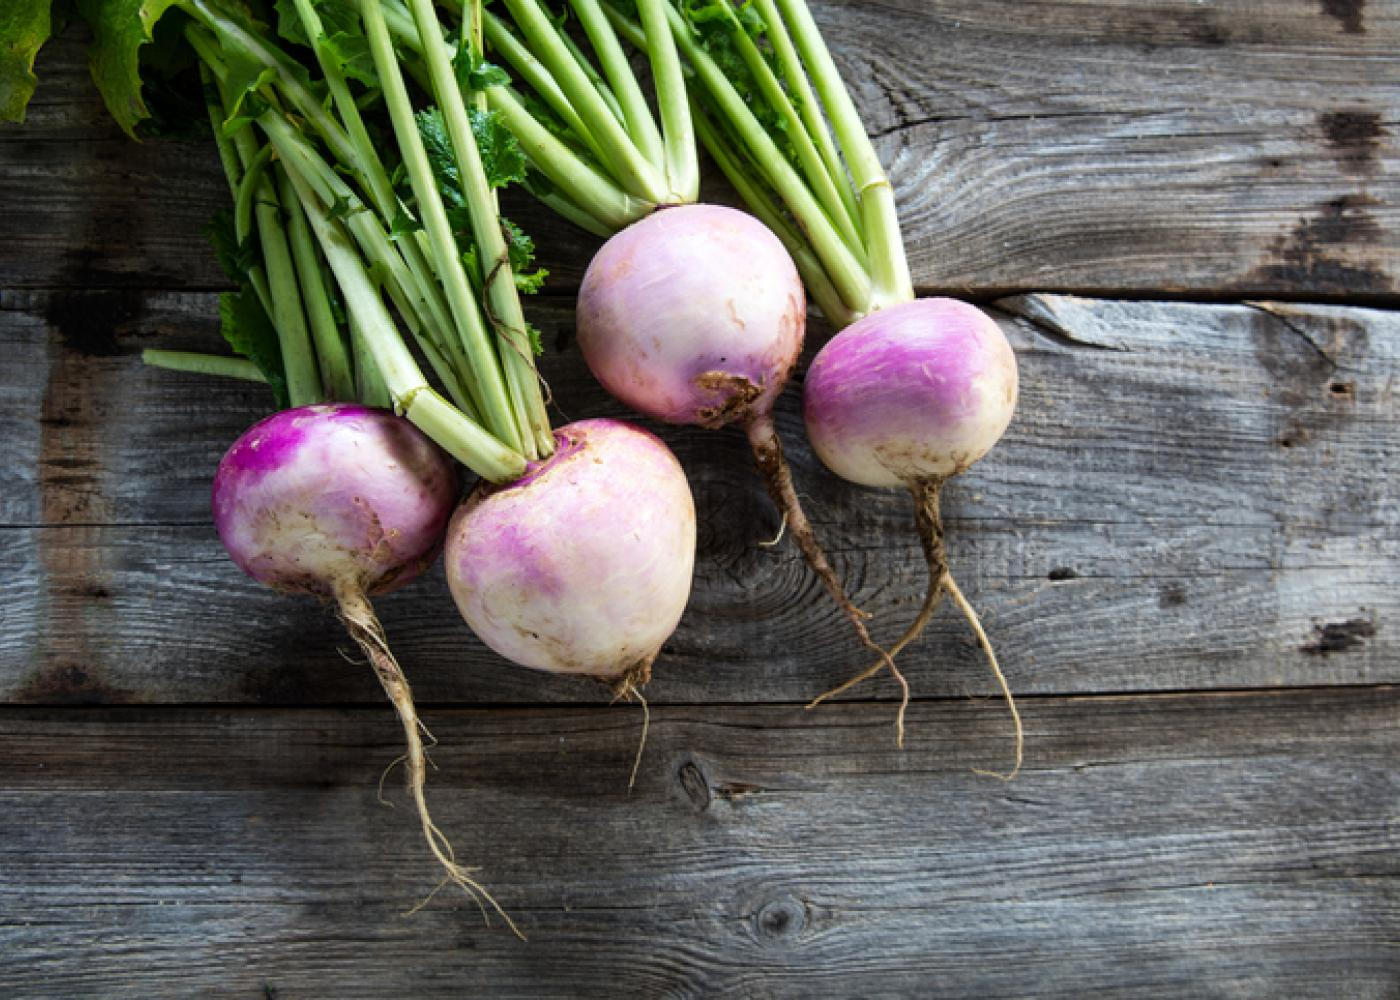 Turnips with green tops